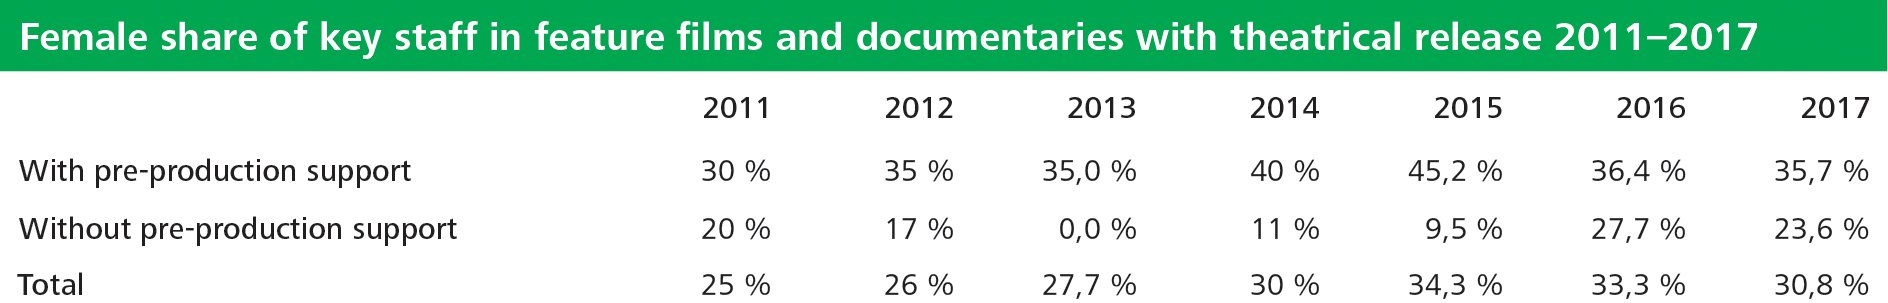 Table 13 Female share of key staff in feature films and documentaries with theatrical release 2011-2017